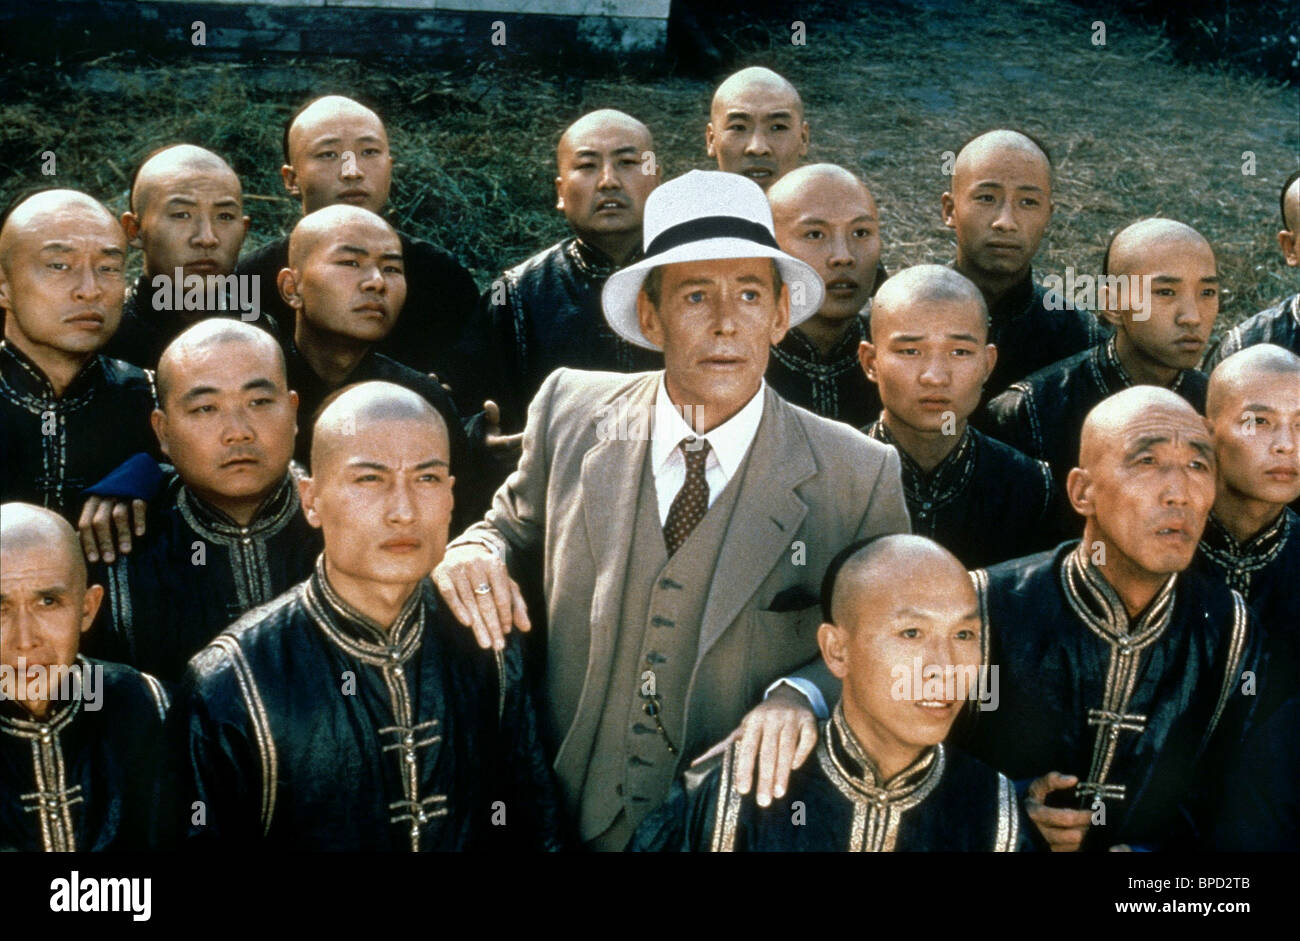 PETER O'TOOLE THE LAST EMPEROR (1987) - Stock Image